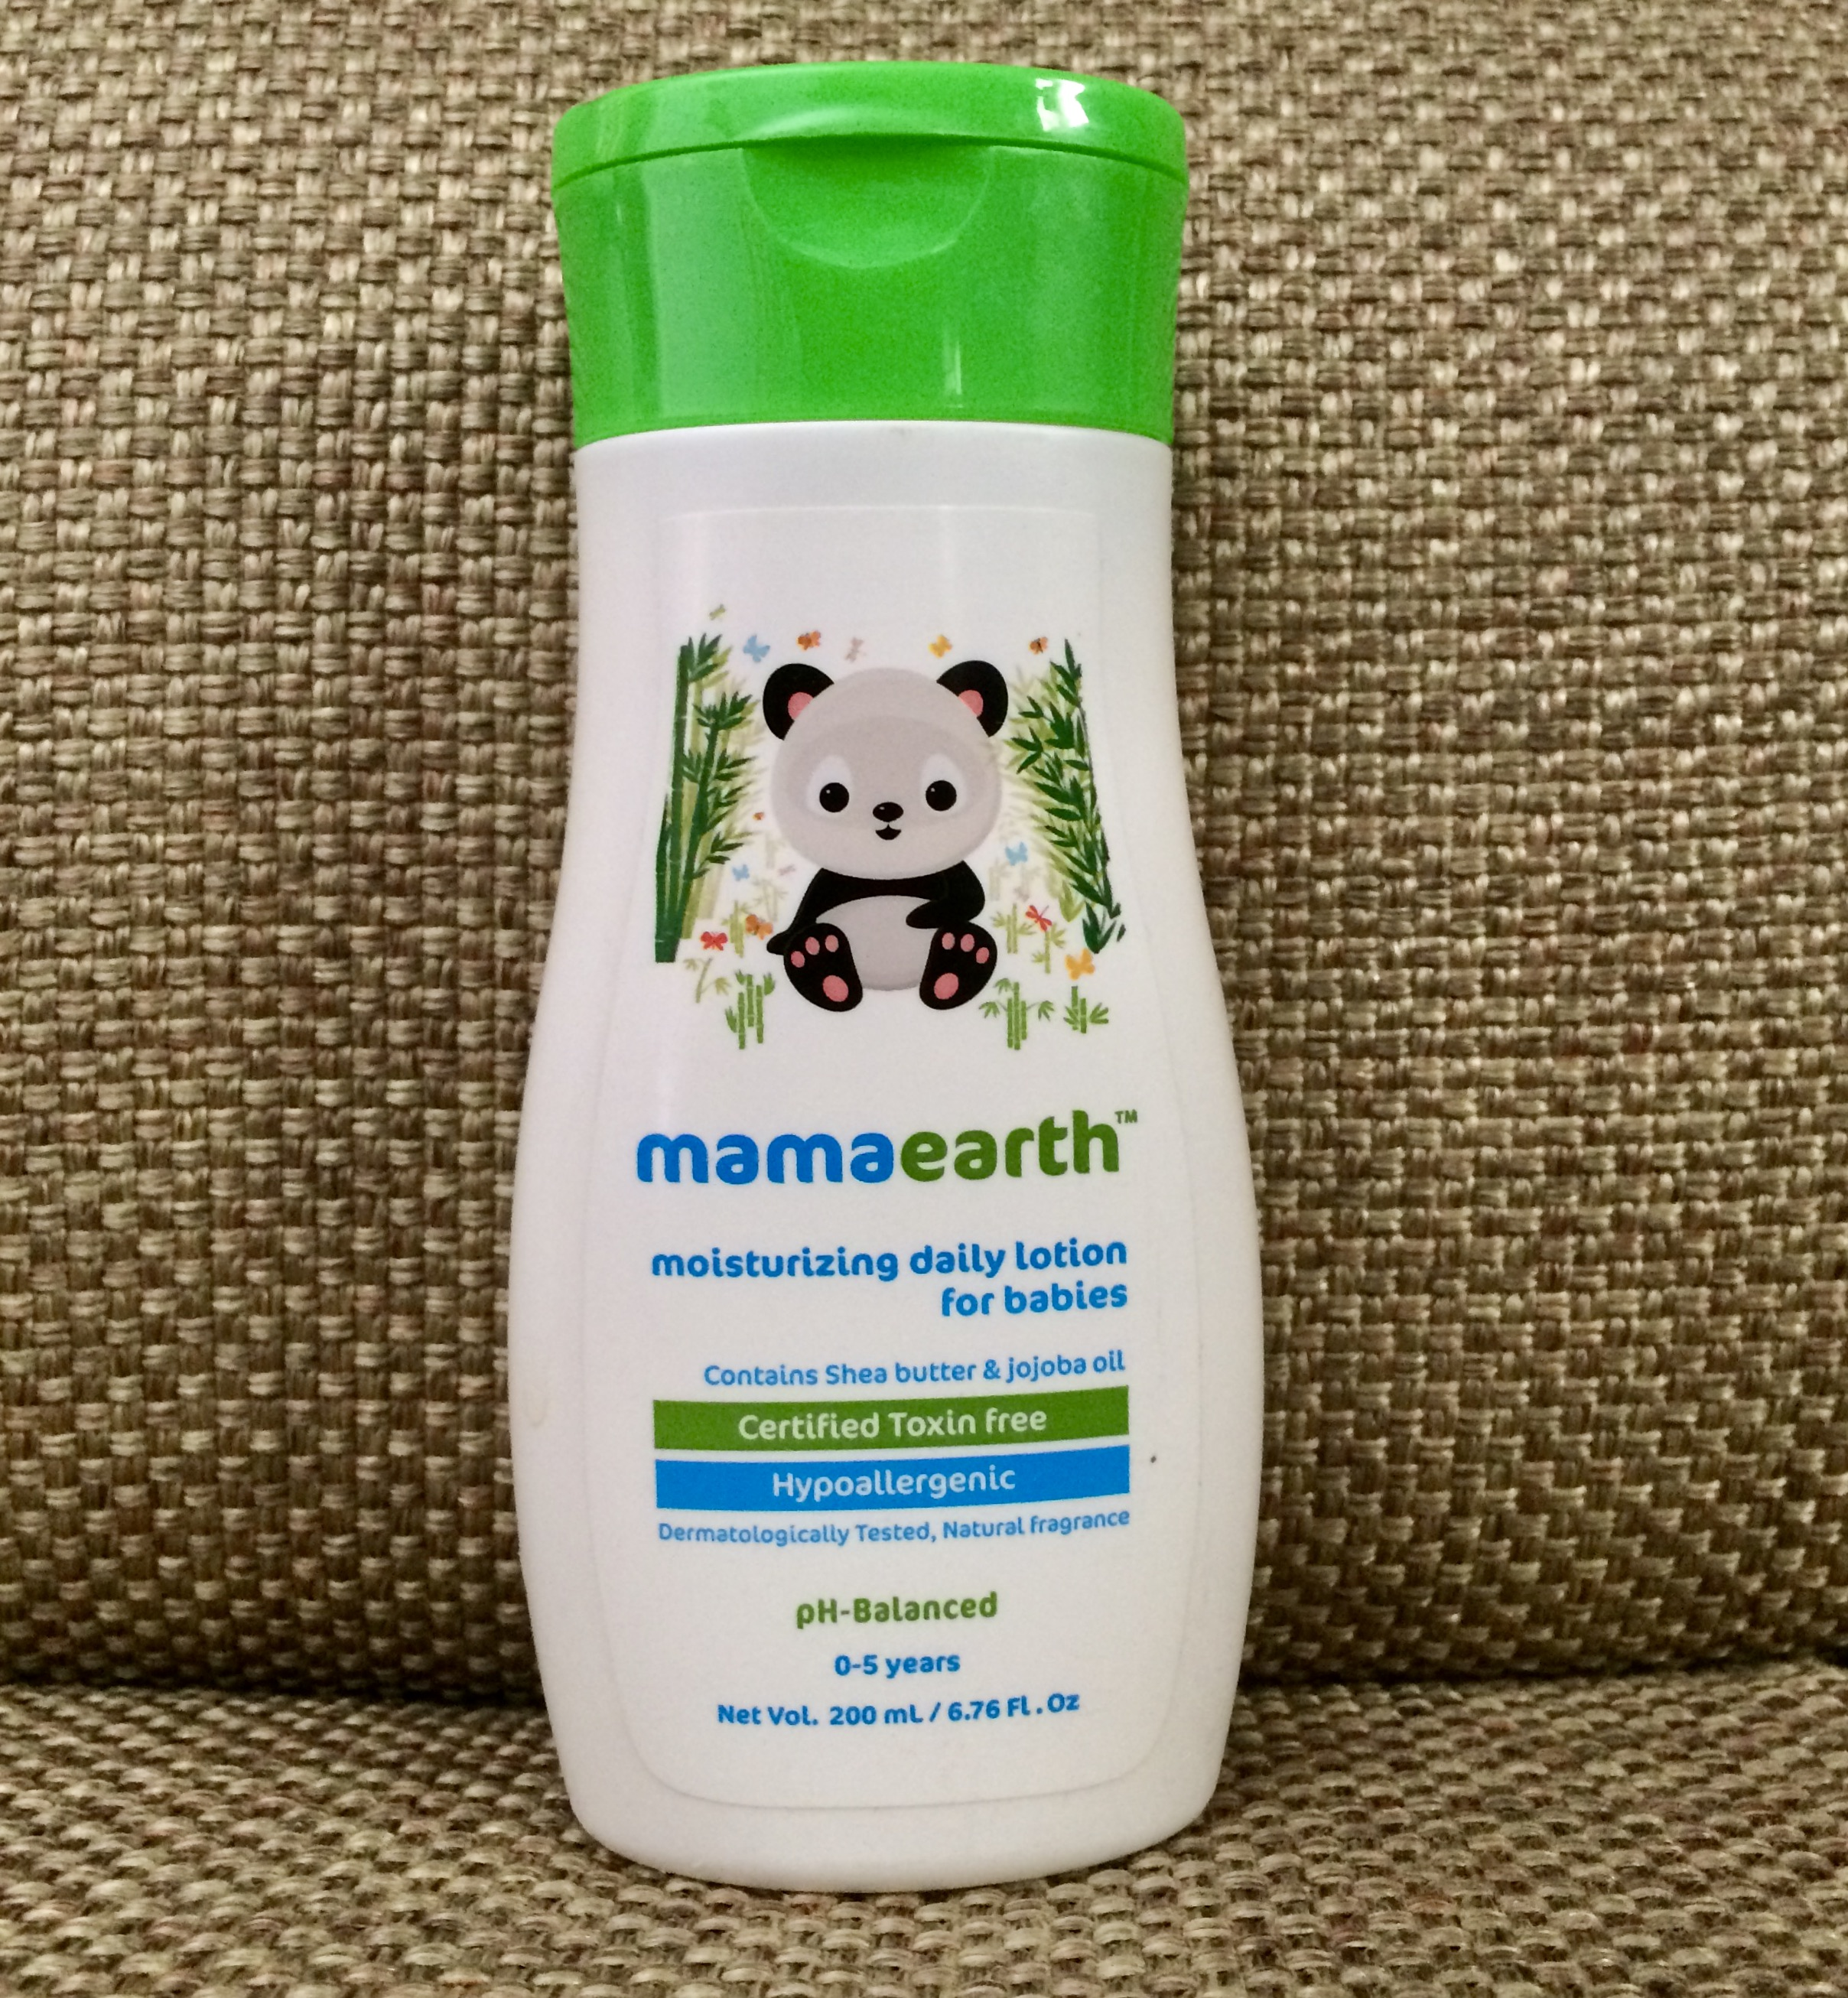 Mamaearth Daily Moisturizing Lotion and Mineral Based Sunscreen-Helps moisturize dry skin-By deepashree14